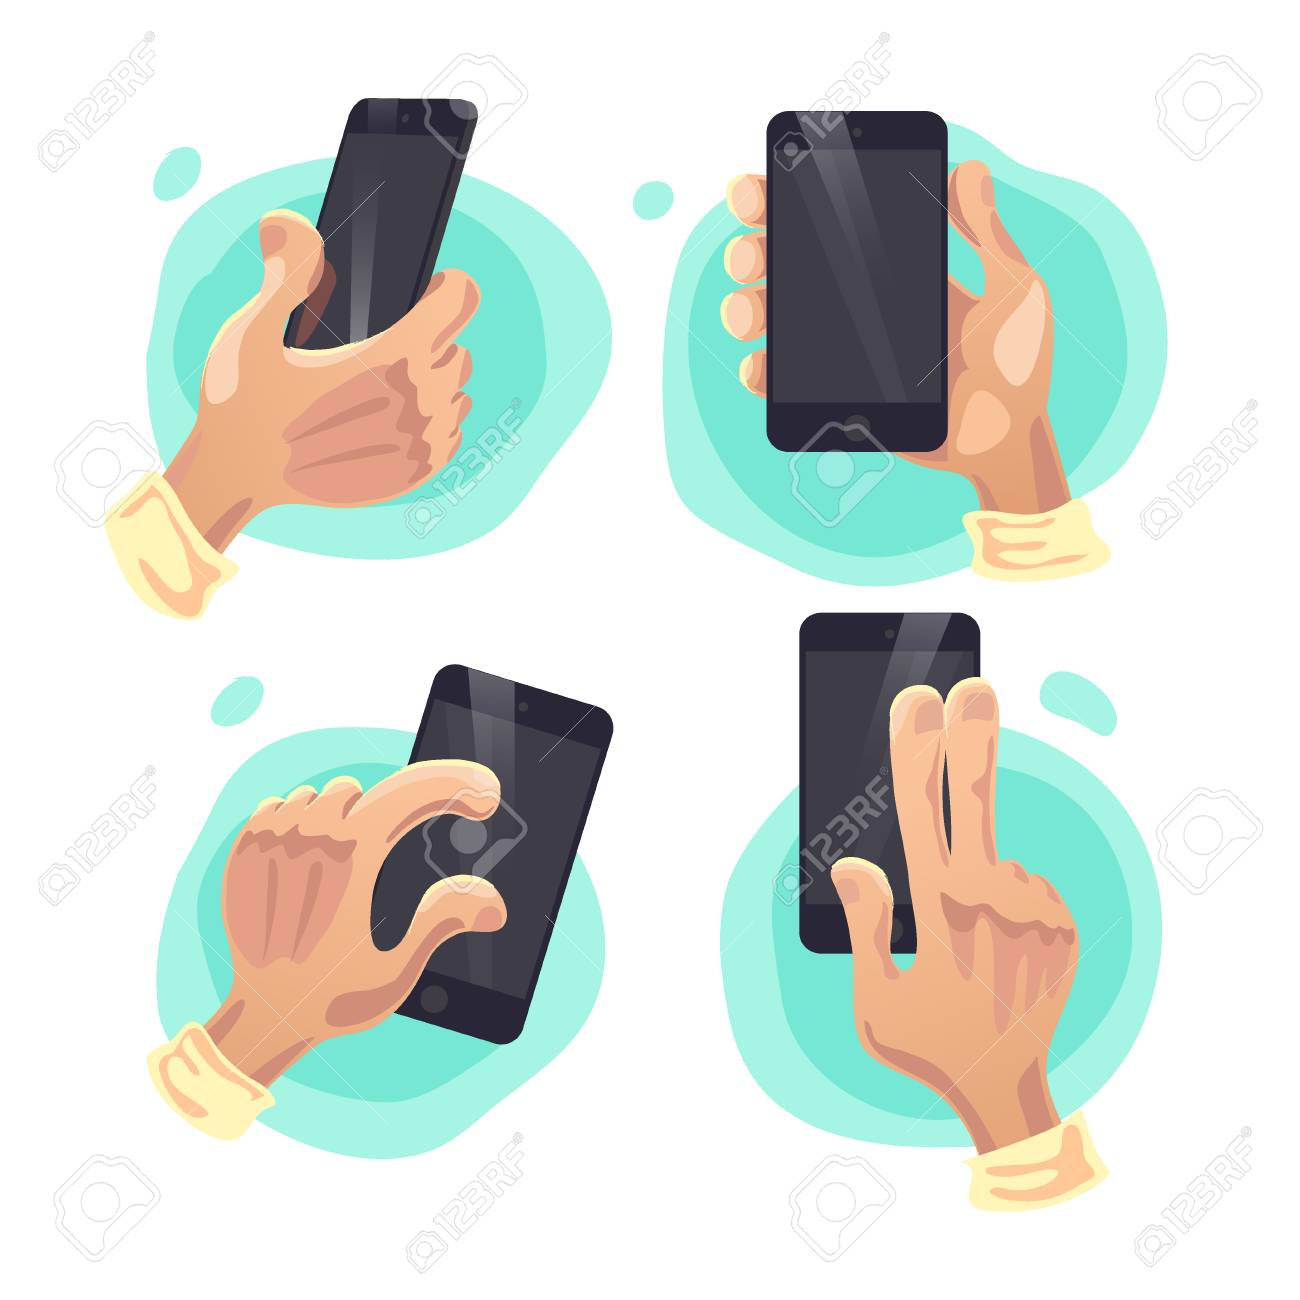 Vector Collection Of Flat Hand Symbols Holding Smartphone Isolated